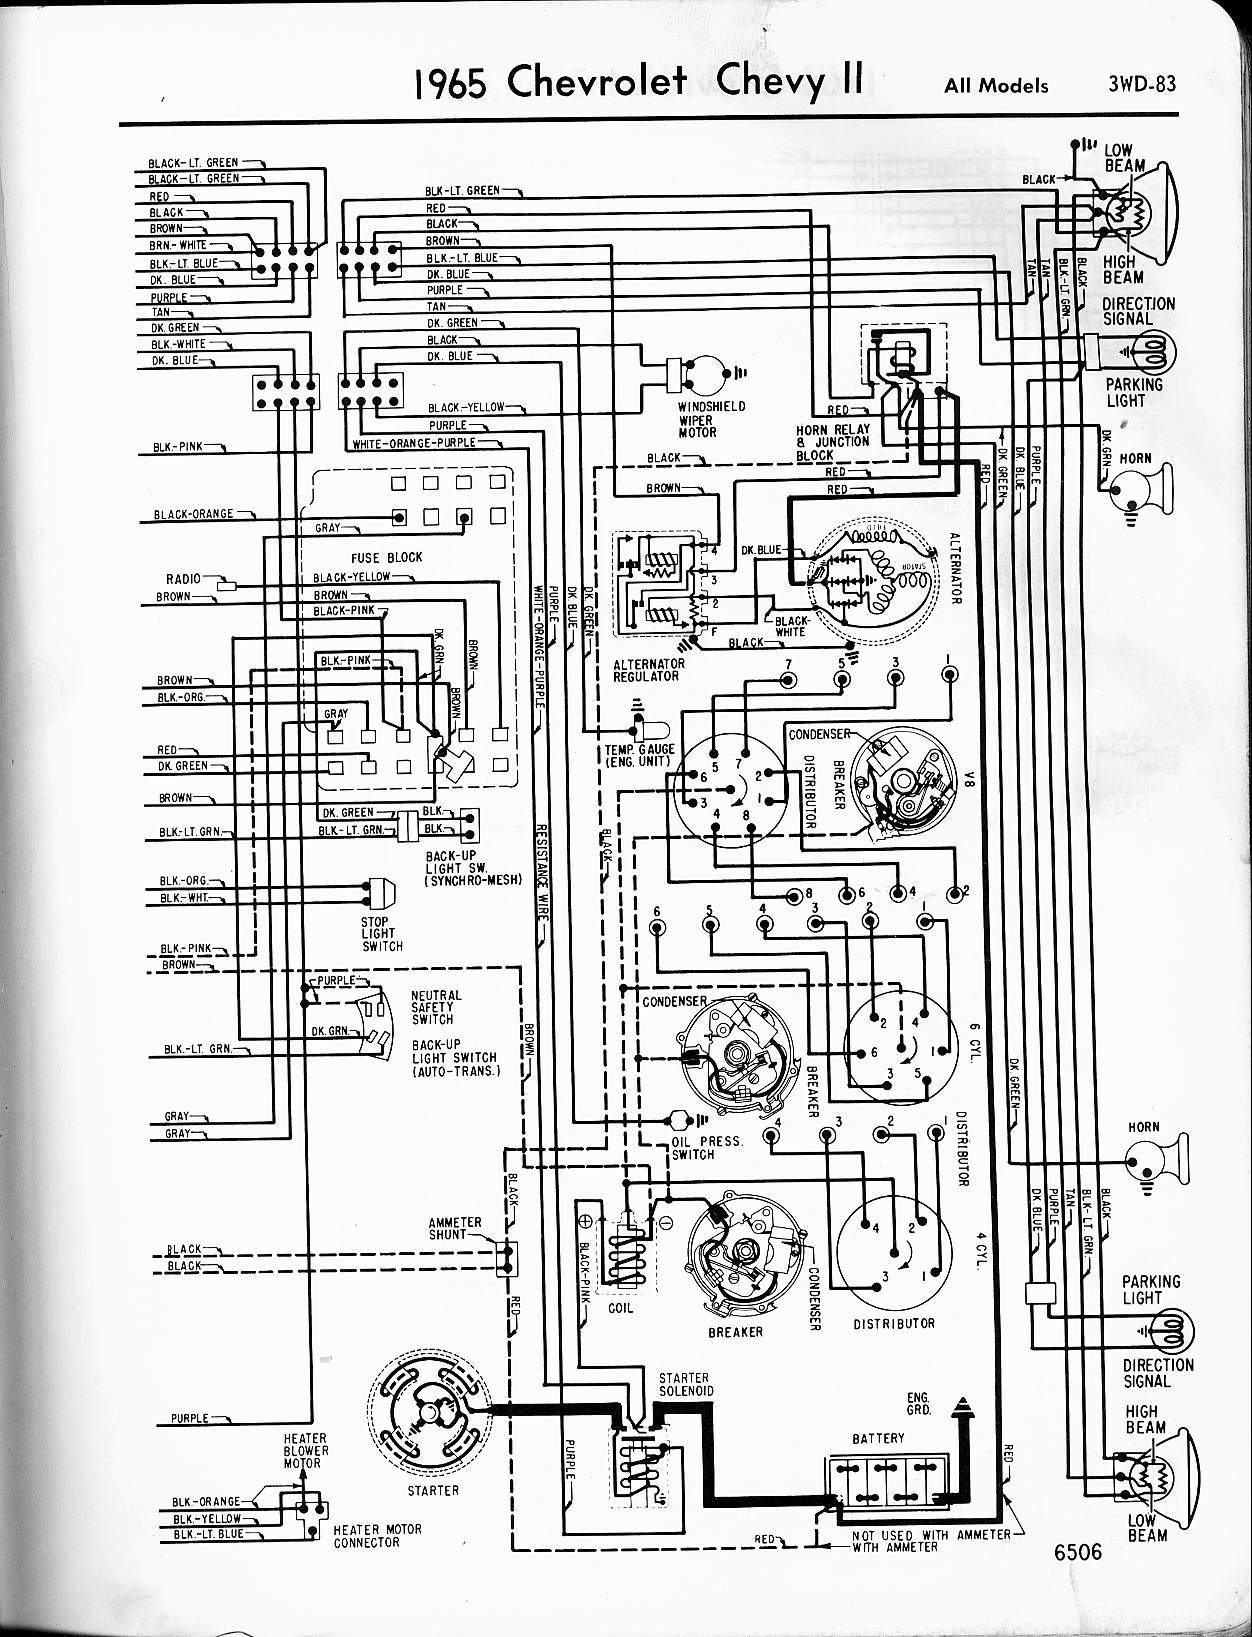 hight resolution of 1964 nova wiring diagram free wiring diagram for you u2022 rh evolvedlife store 1970 chevy nova wiring diagram 1972 chevy nova wiring diagram